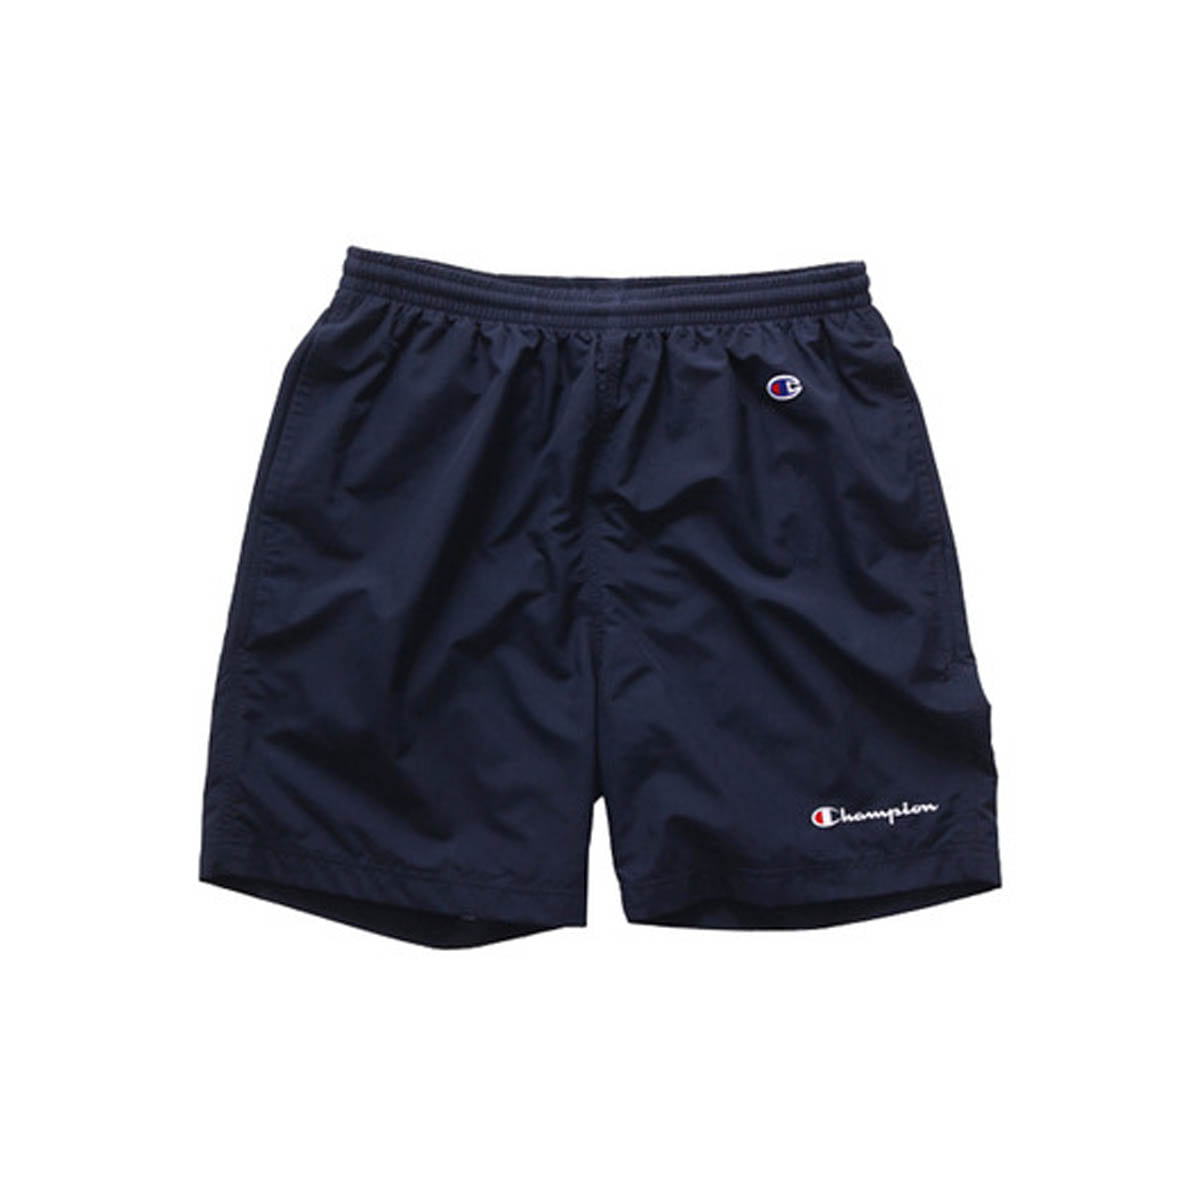 [CHAMPION] ACTION STYLE SHORTS 'NAVY' (C3-K518)